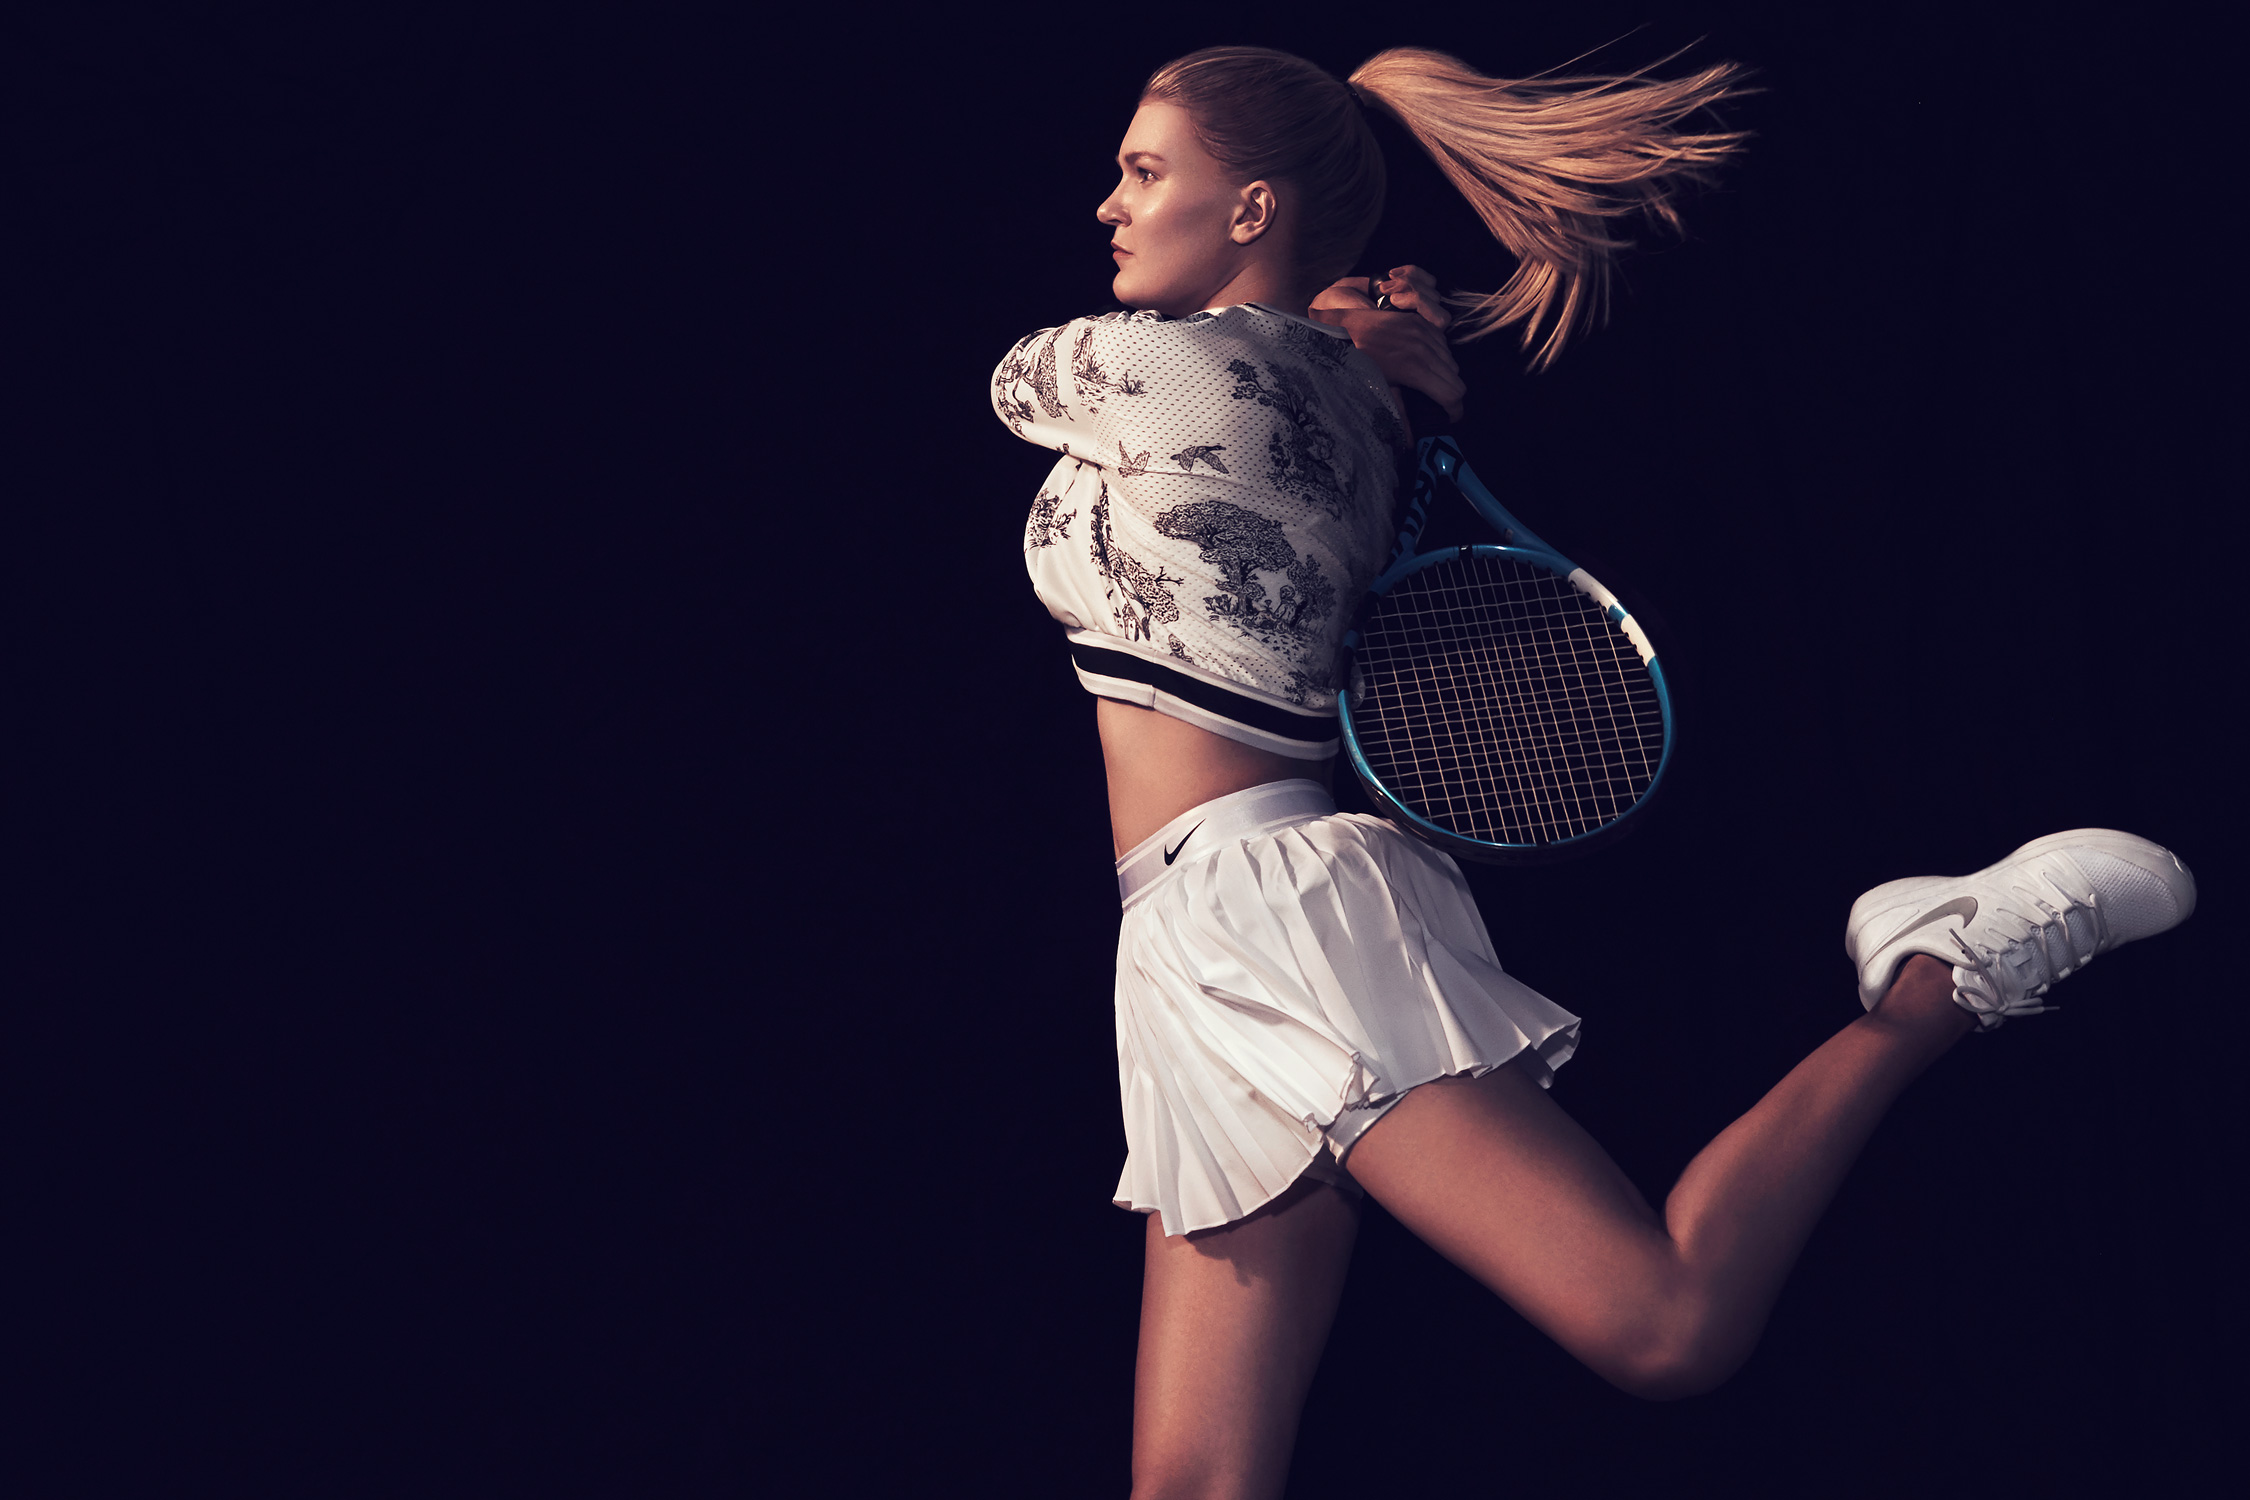 Nike Tennis - Stephen Denton Photography - Los Angeles, CA / Phoenix, AZ Commercial Photographer